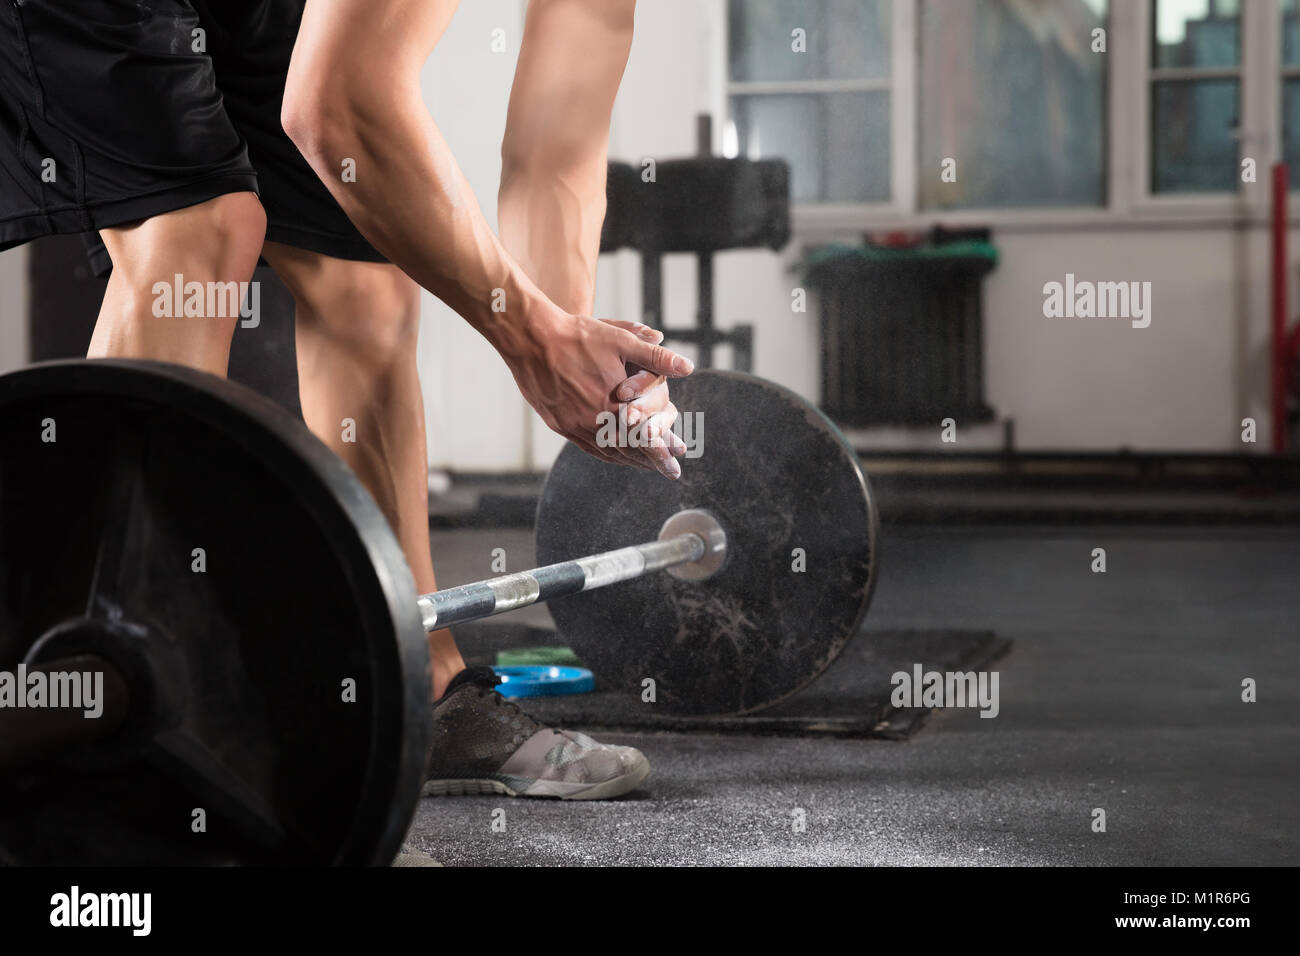 Weightlifter Hand Applying Talc Powder Before Doing Exercise With Barbell In Gym - Stock Image